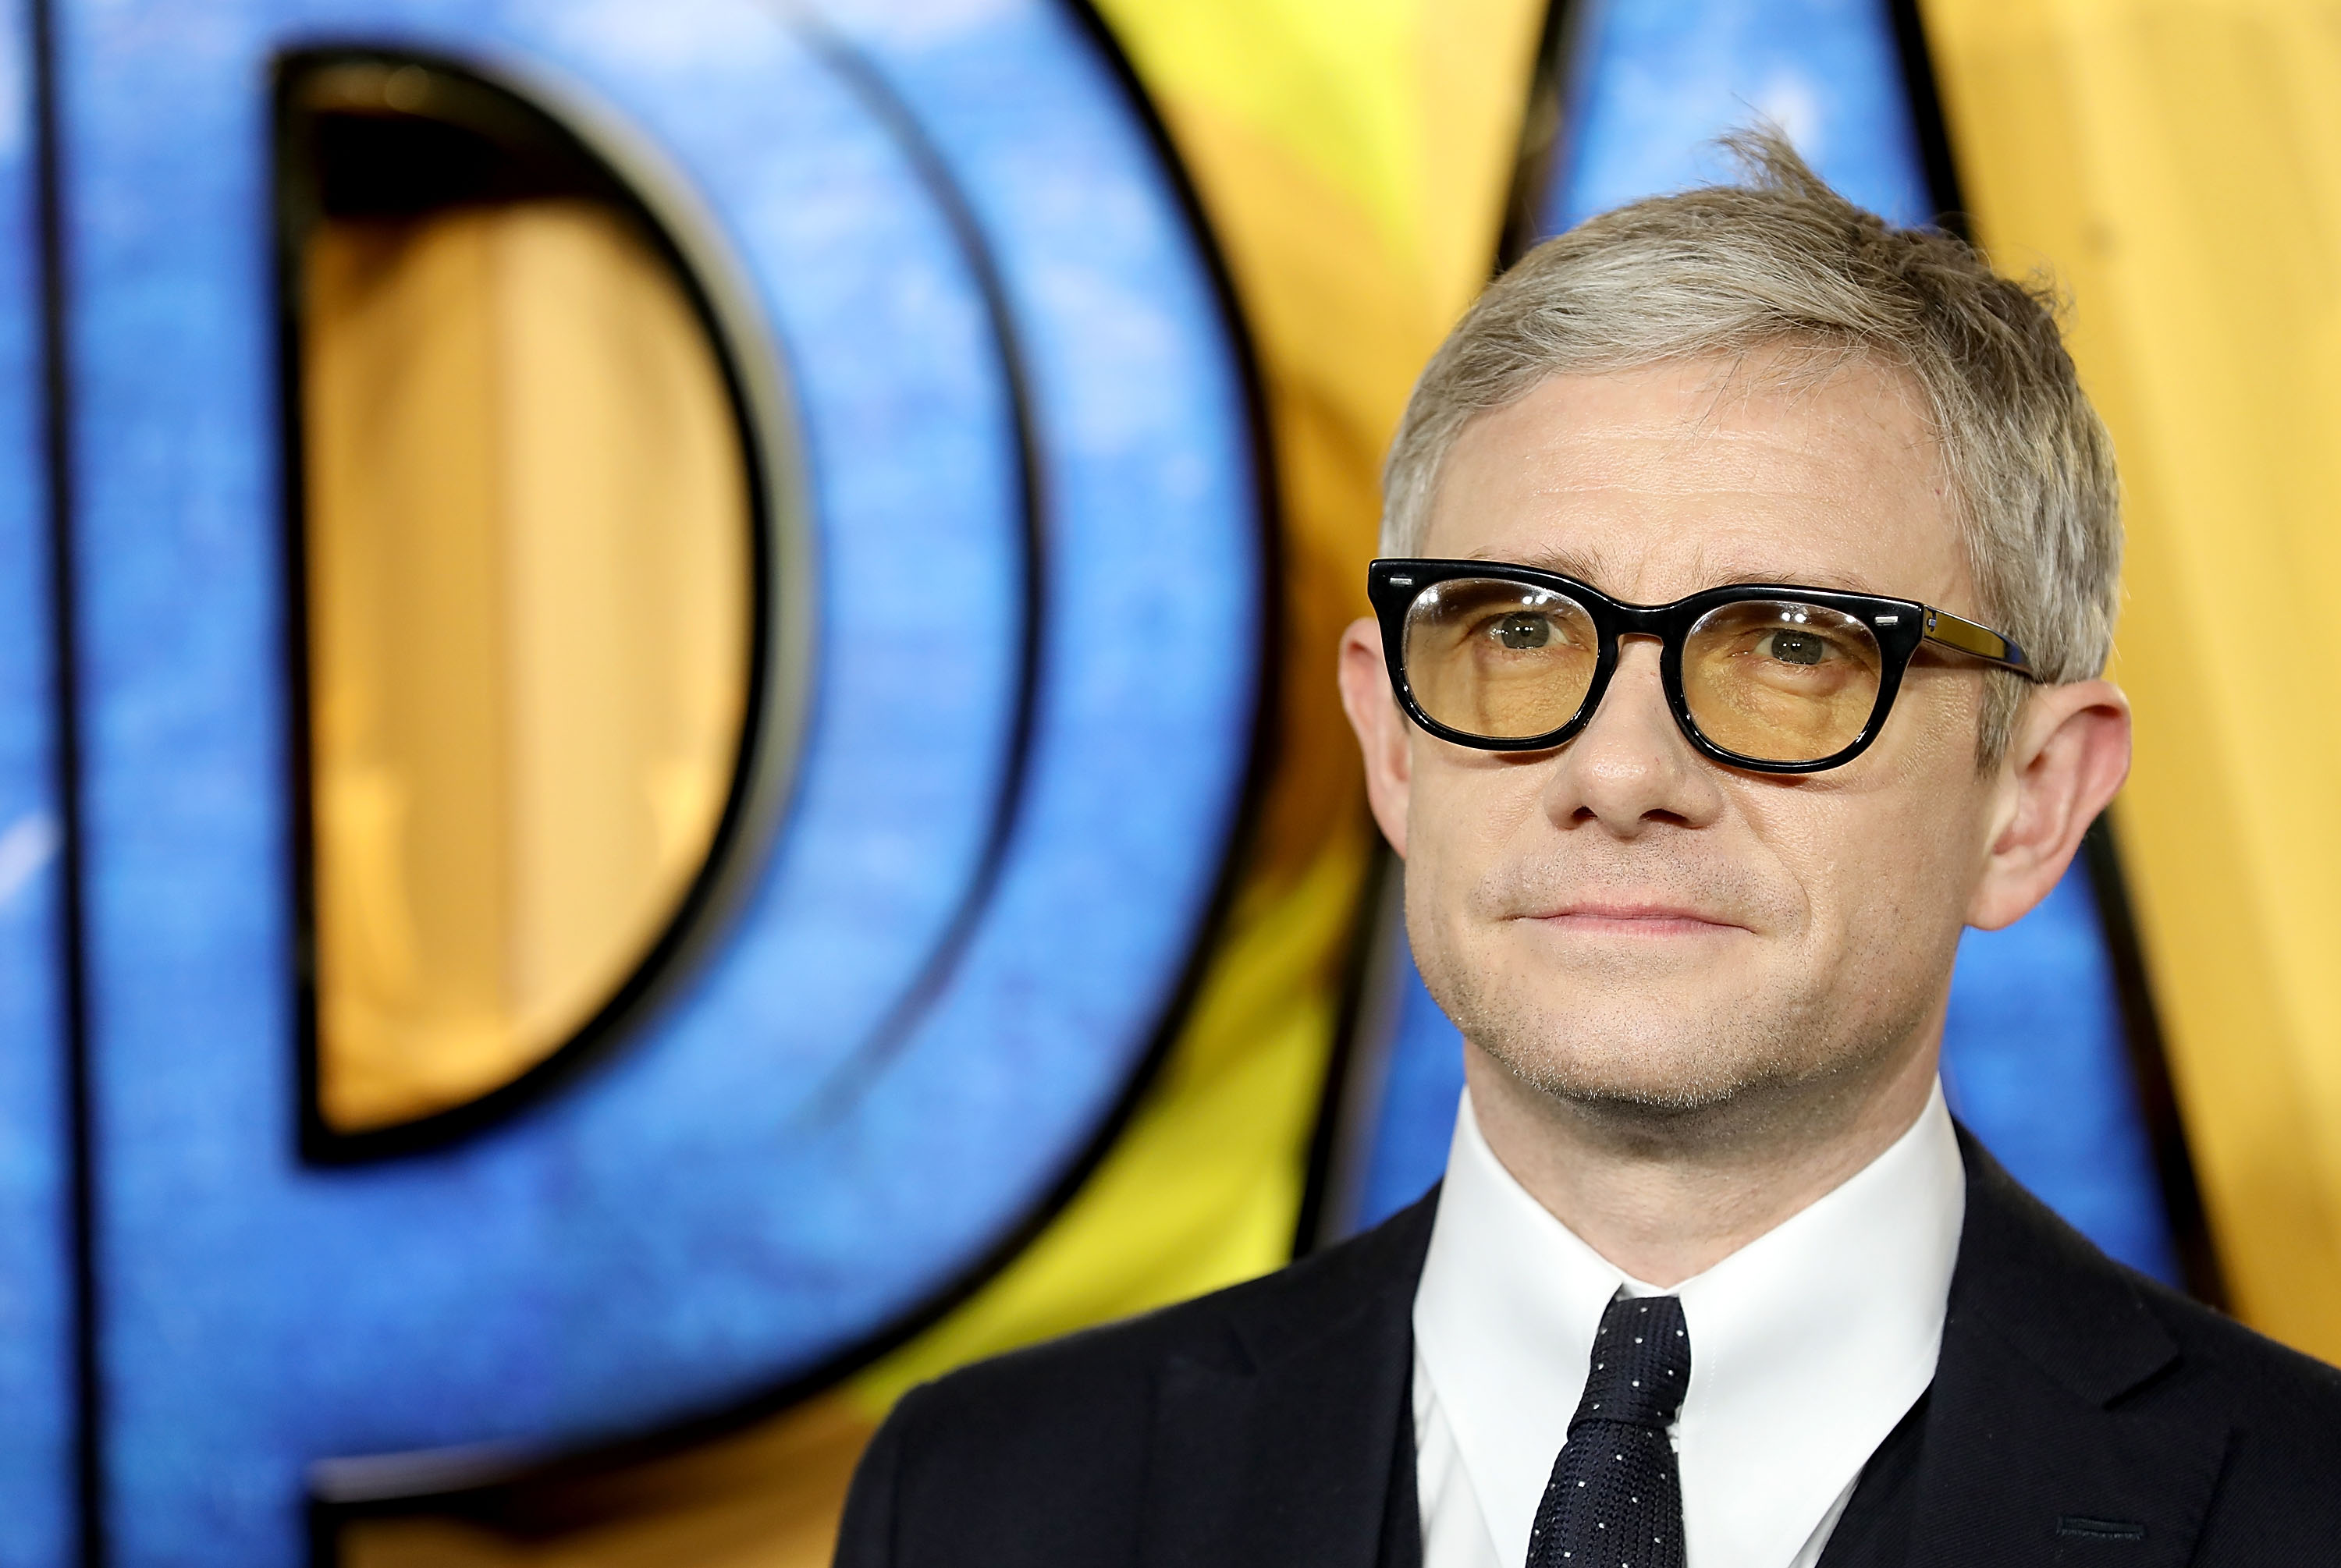 LONDON, ENGLAND - FEBRUARY 08: Martin Freeman attends the European Premiere of 'Black Panther' at Eventim Apollo on February 8, 2018 in London, England. (Photo by Tim P. Whitby/Tim P. Whitby/Getty Images)